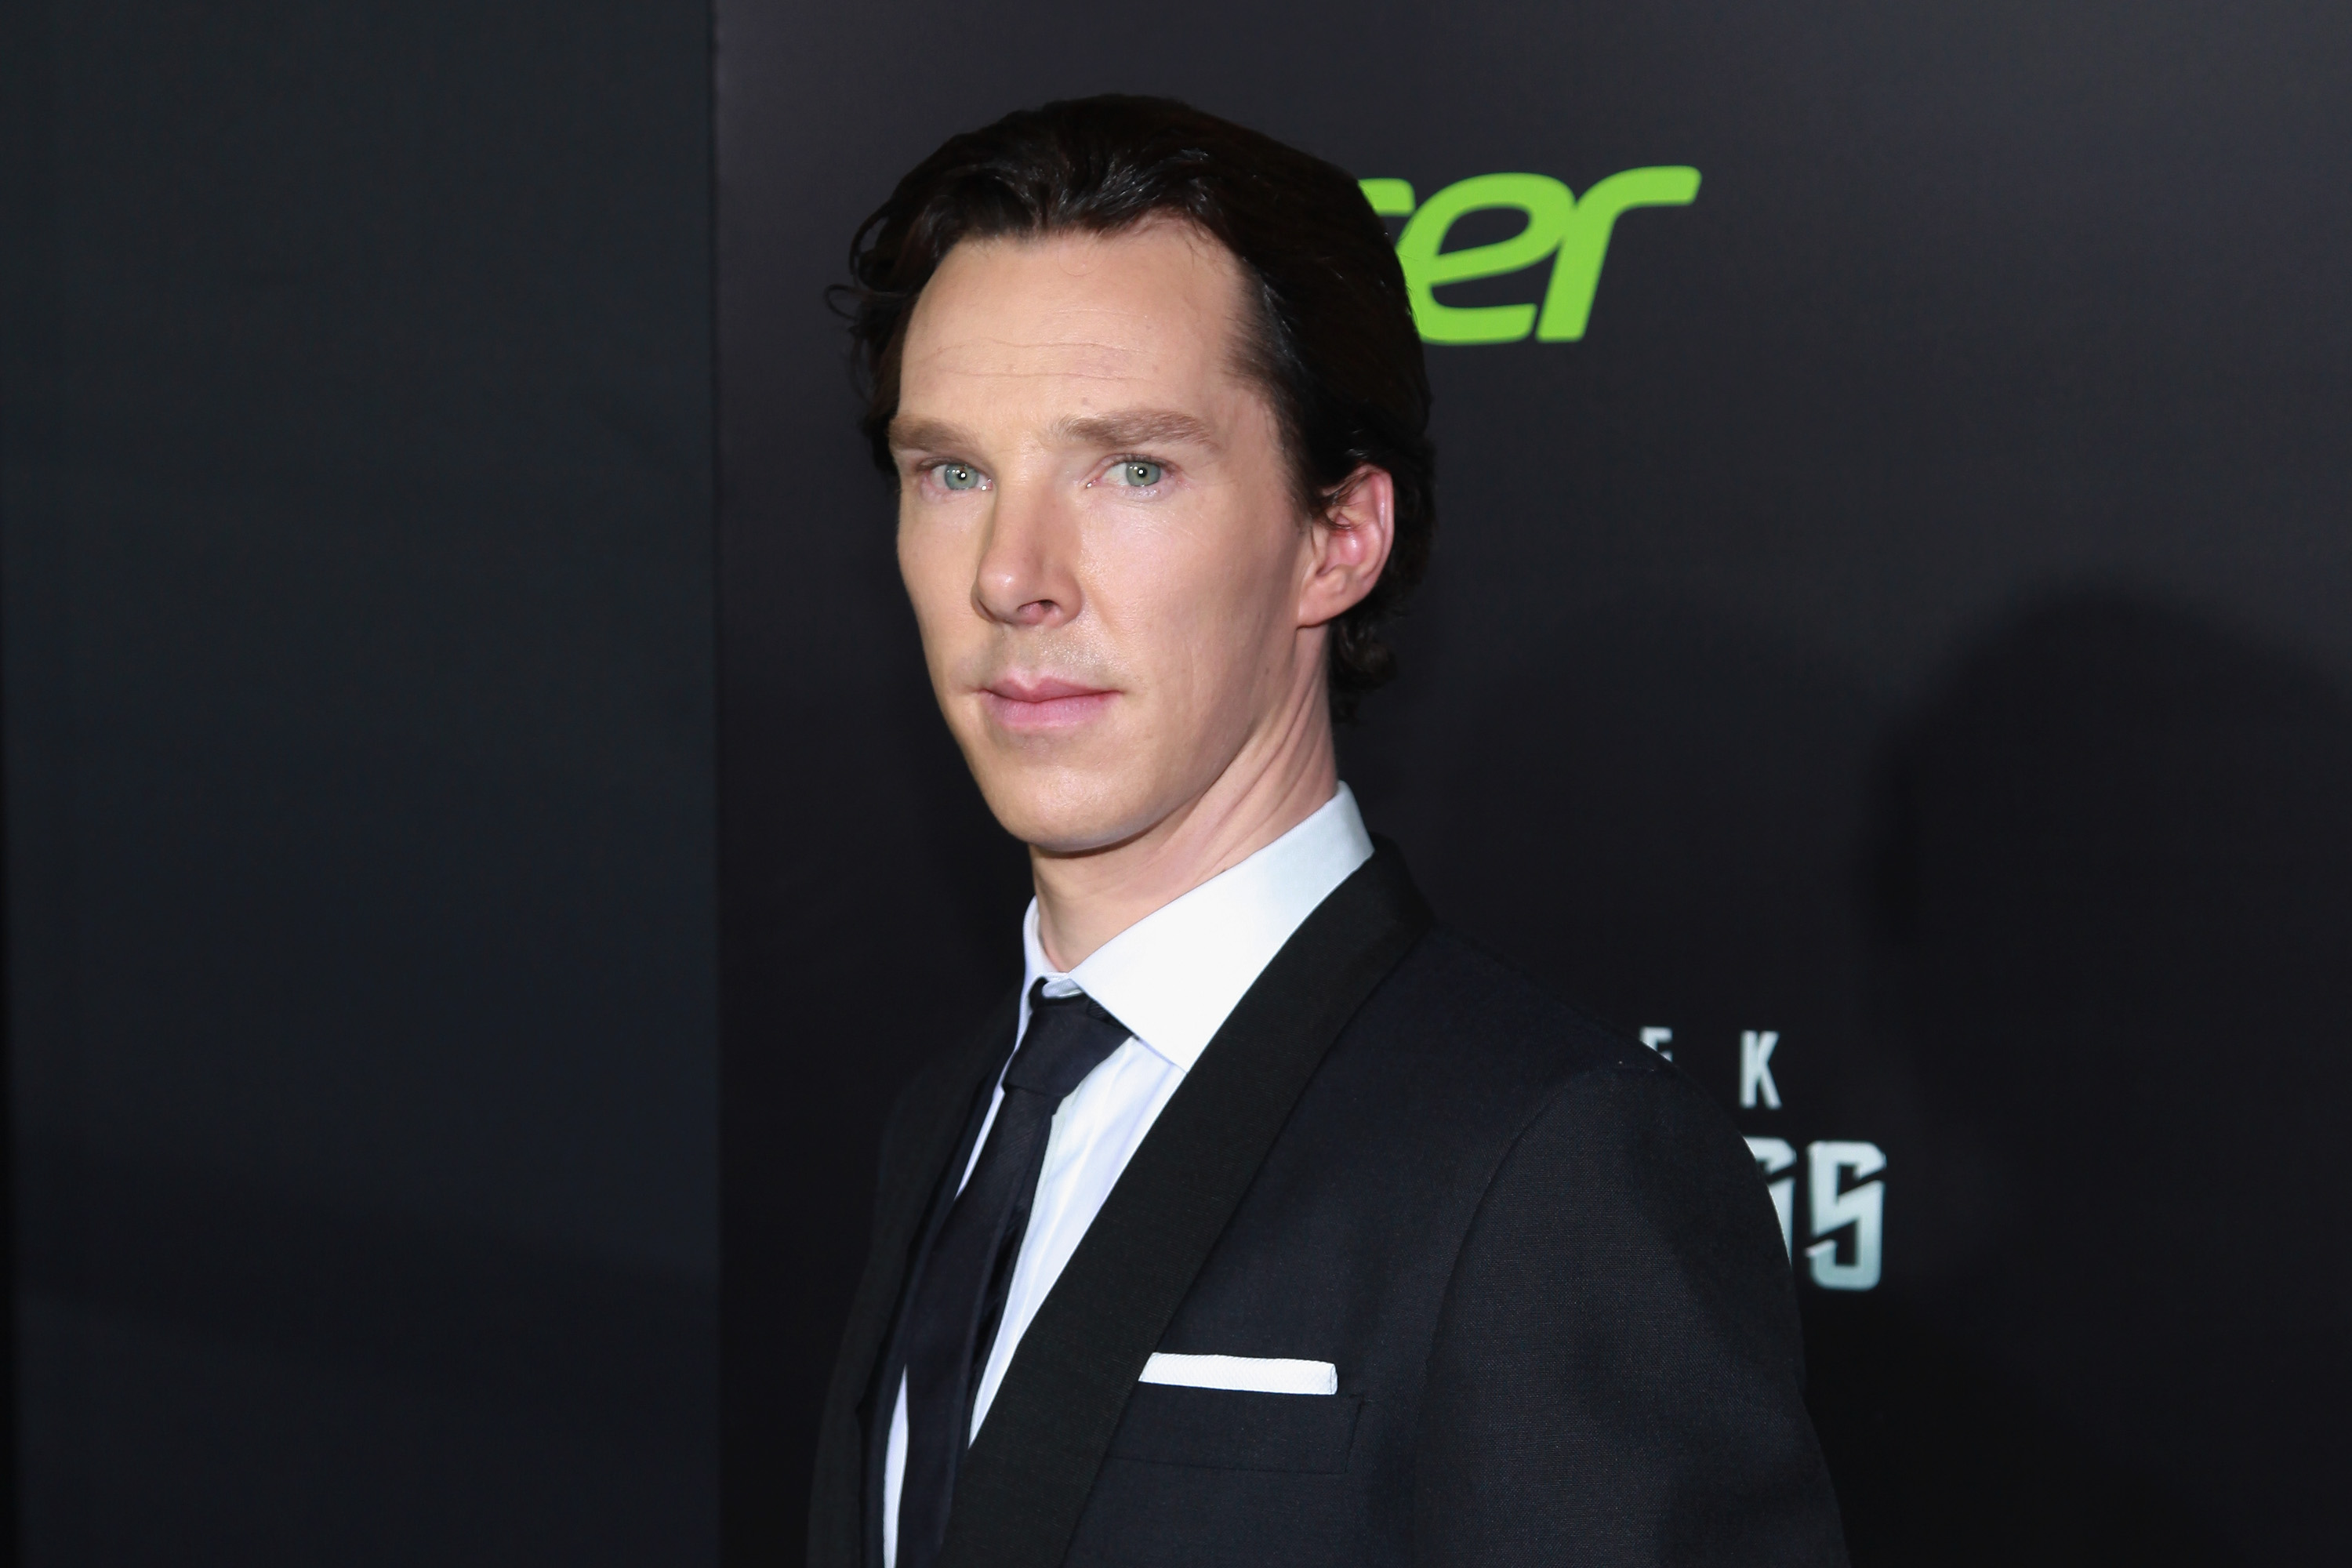 NEW YORK, NY - MAY 09:  Actor Benedict Cumberbatch attends the 'Star Trek Into Darkness' screening at AMC Loews Lincoln Squar